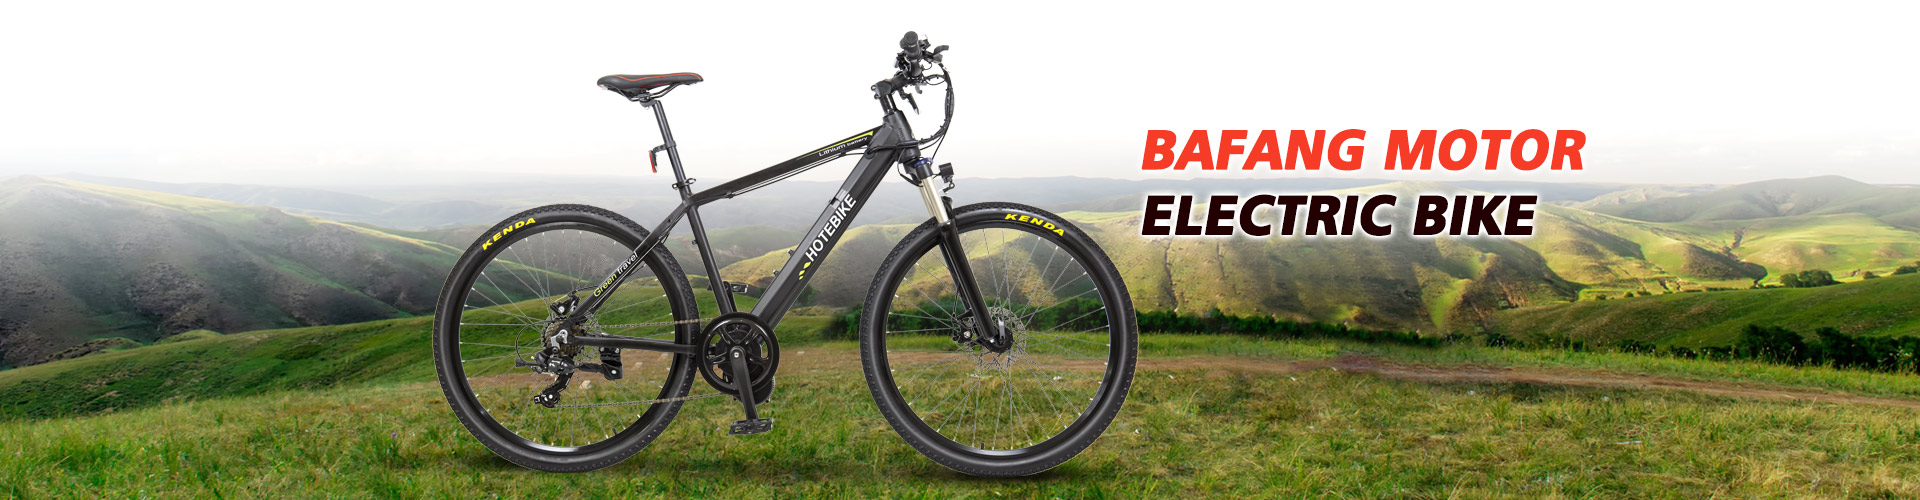 bafang motor electric bike